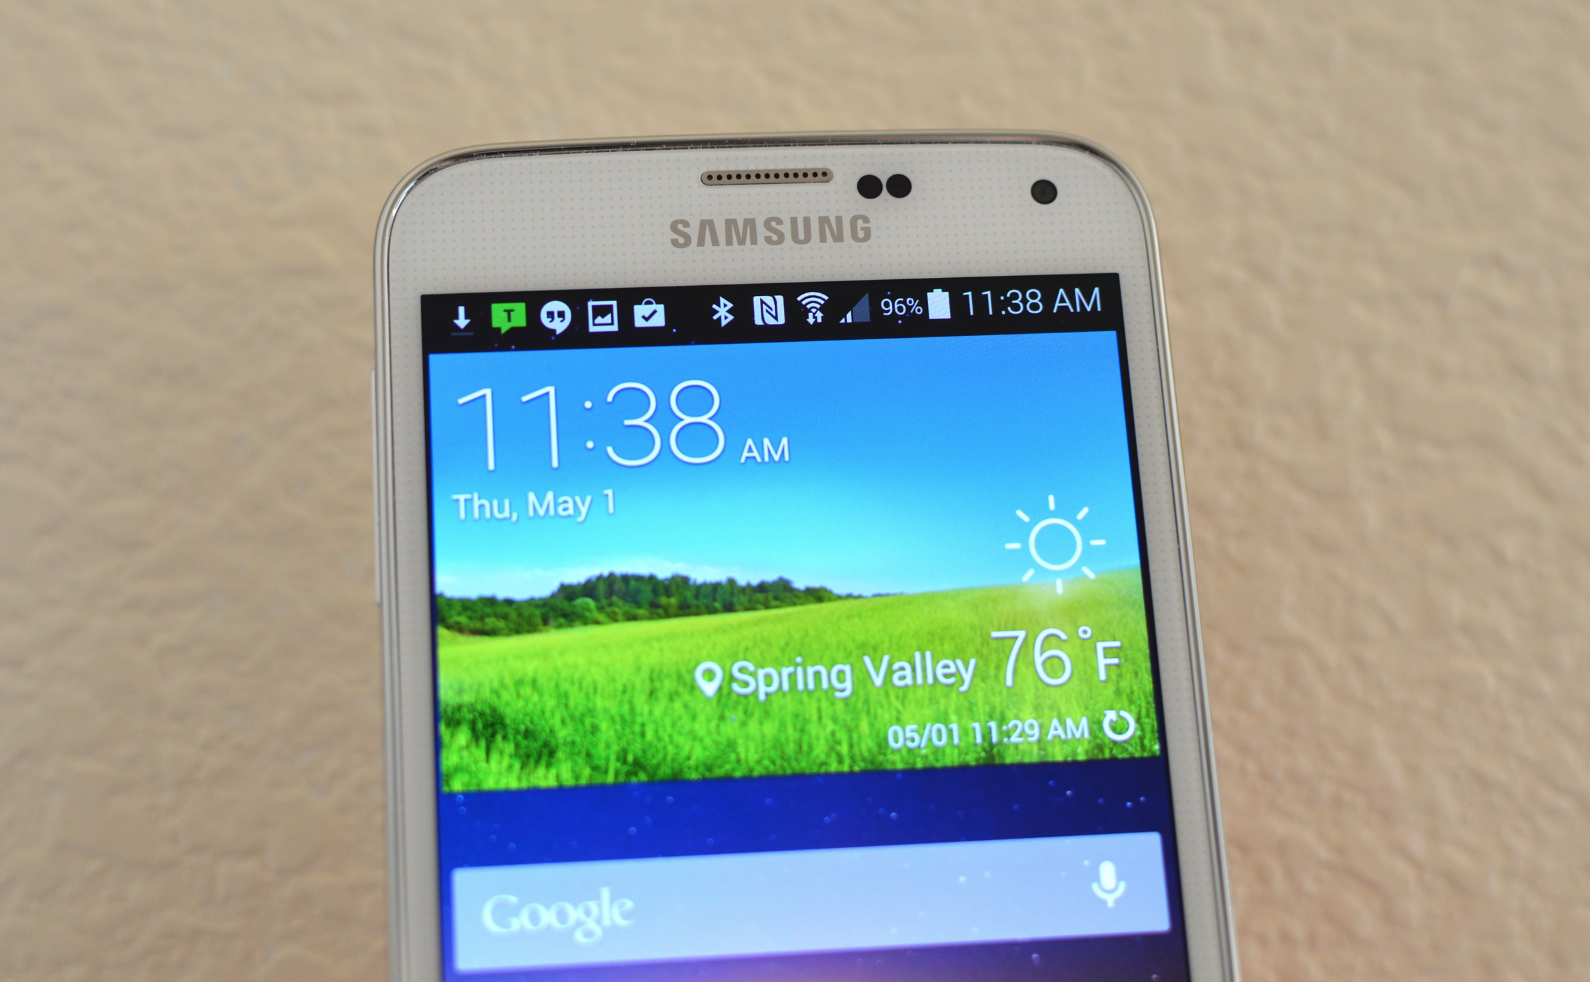 Samsung Galaxy S5 Notification Bar Icons Explained